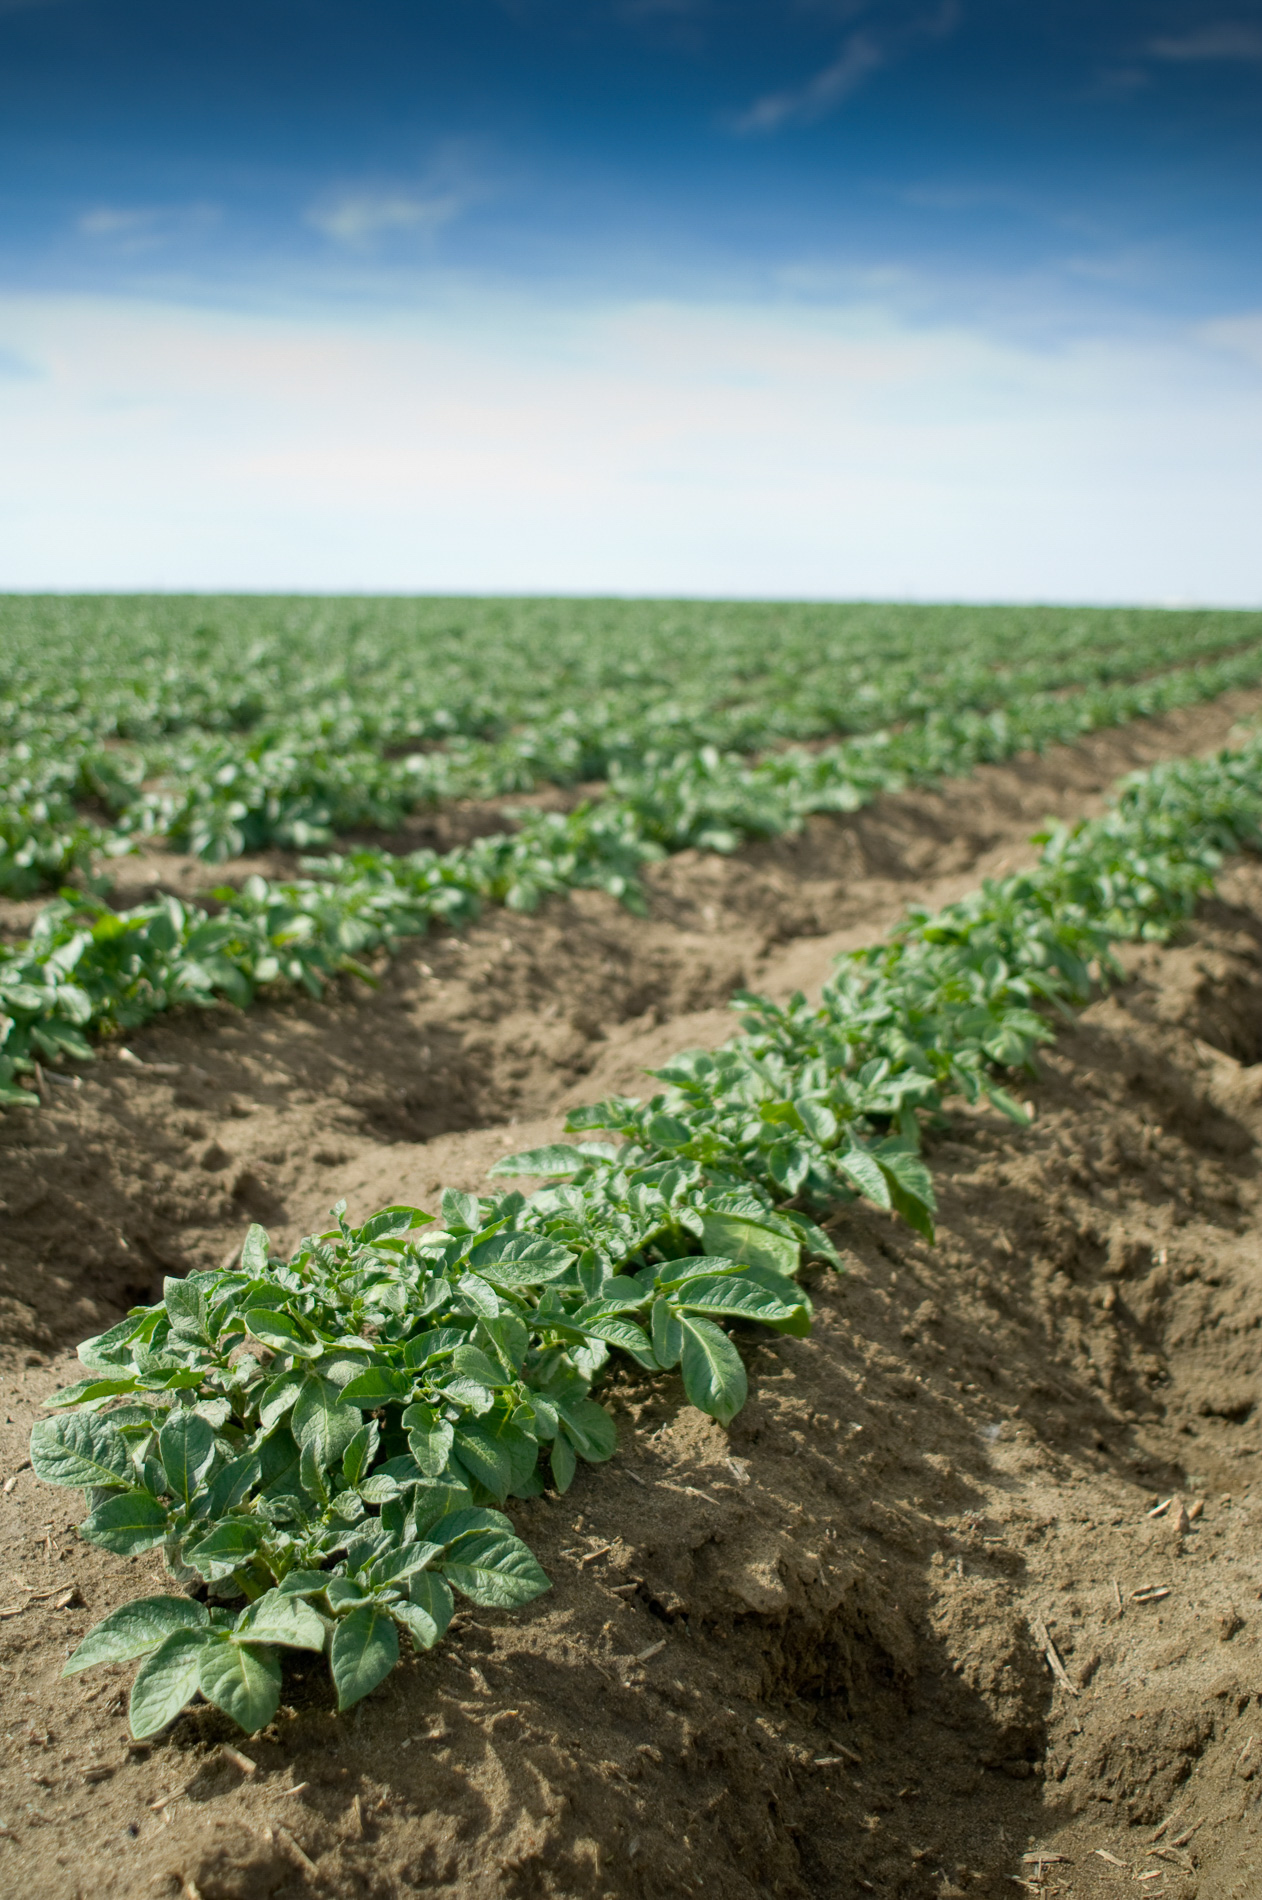 Cultivated Potatoes